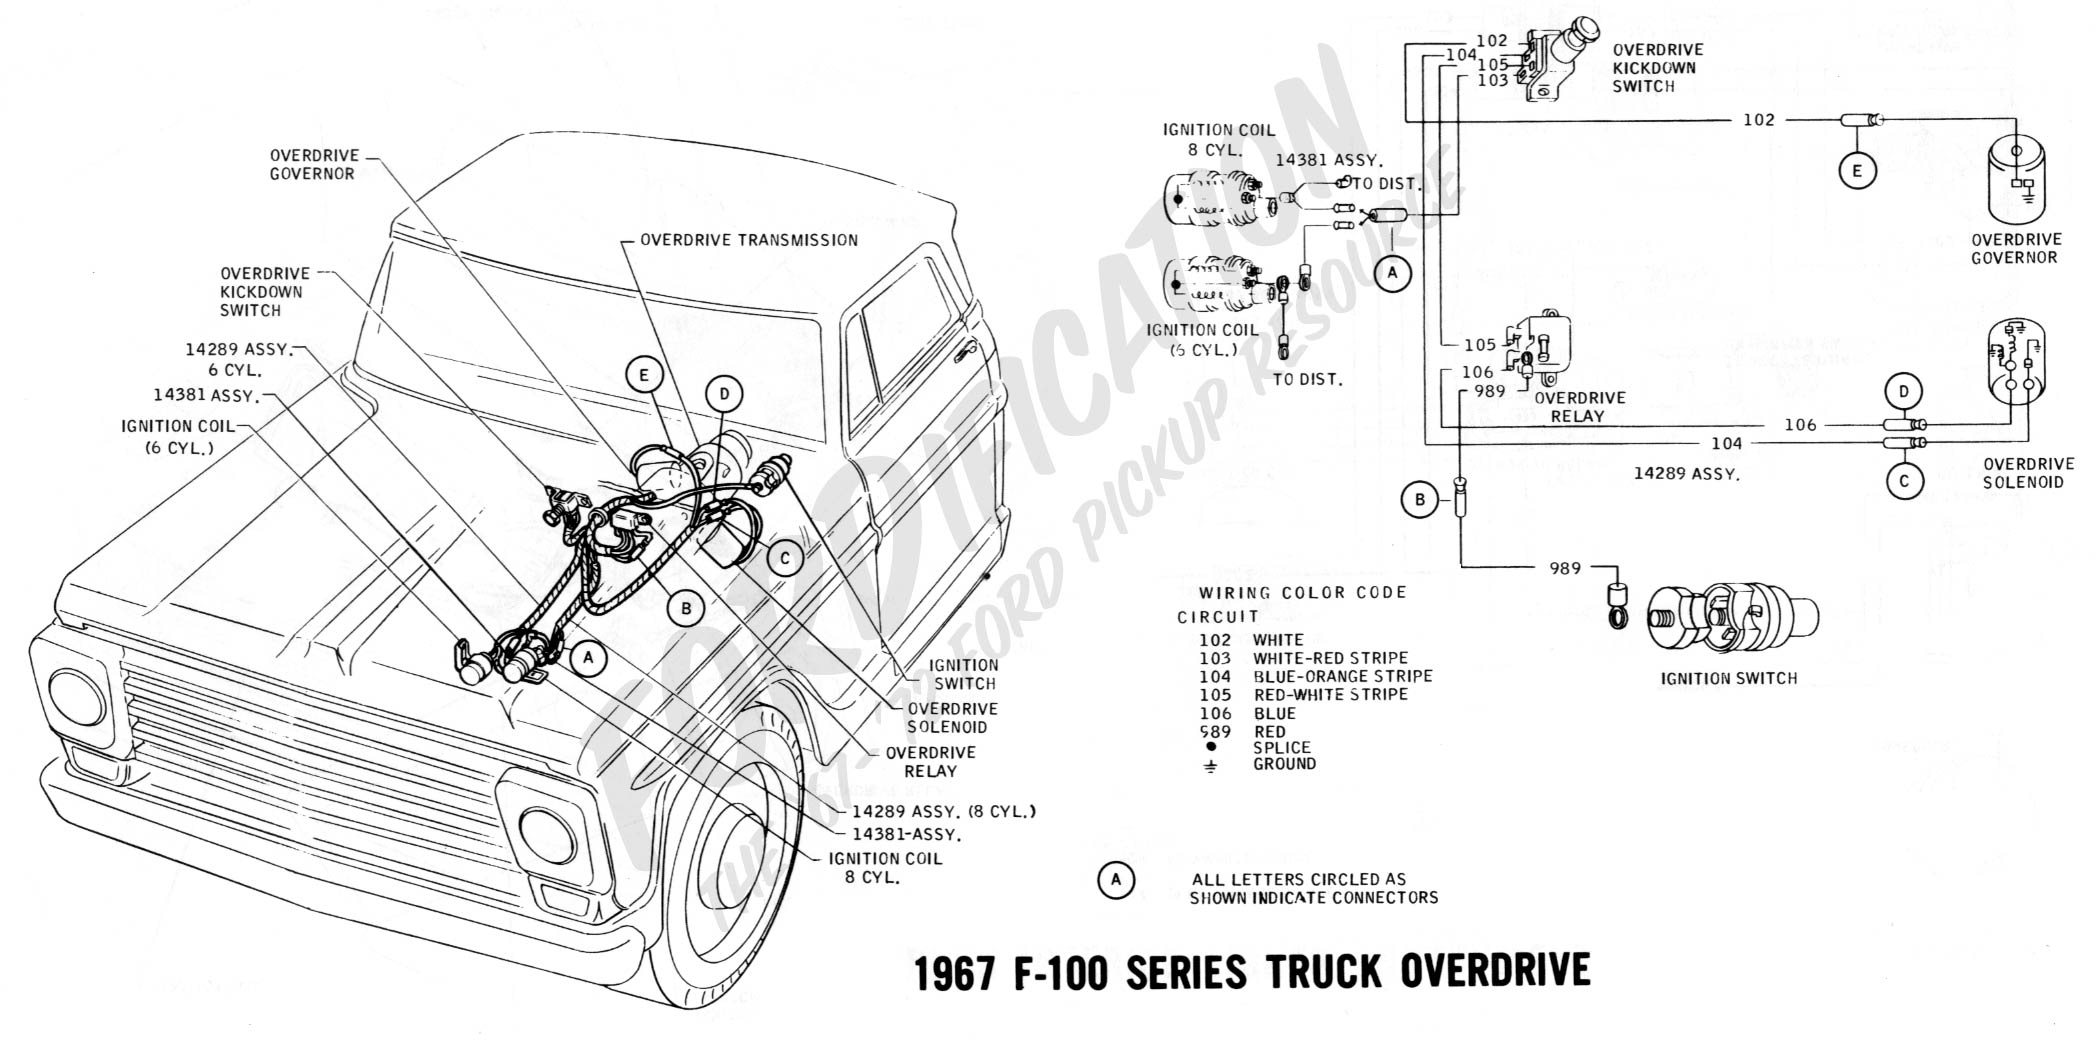 1967 F 100 Wiring Harness Circuit Diagram Schema 1969 Ford Galaxie Truck Schematics Pick Up